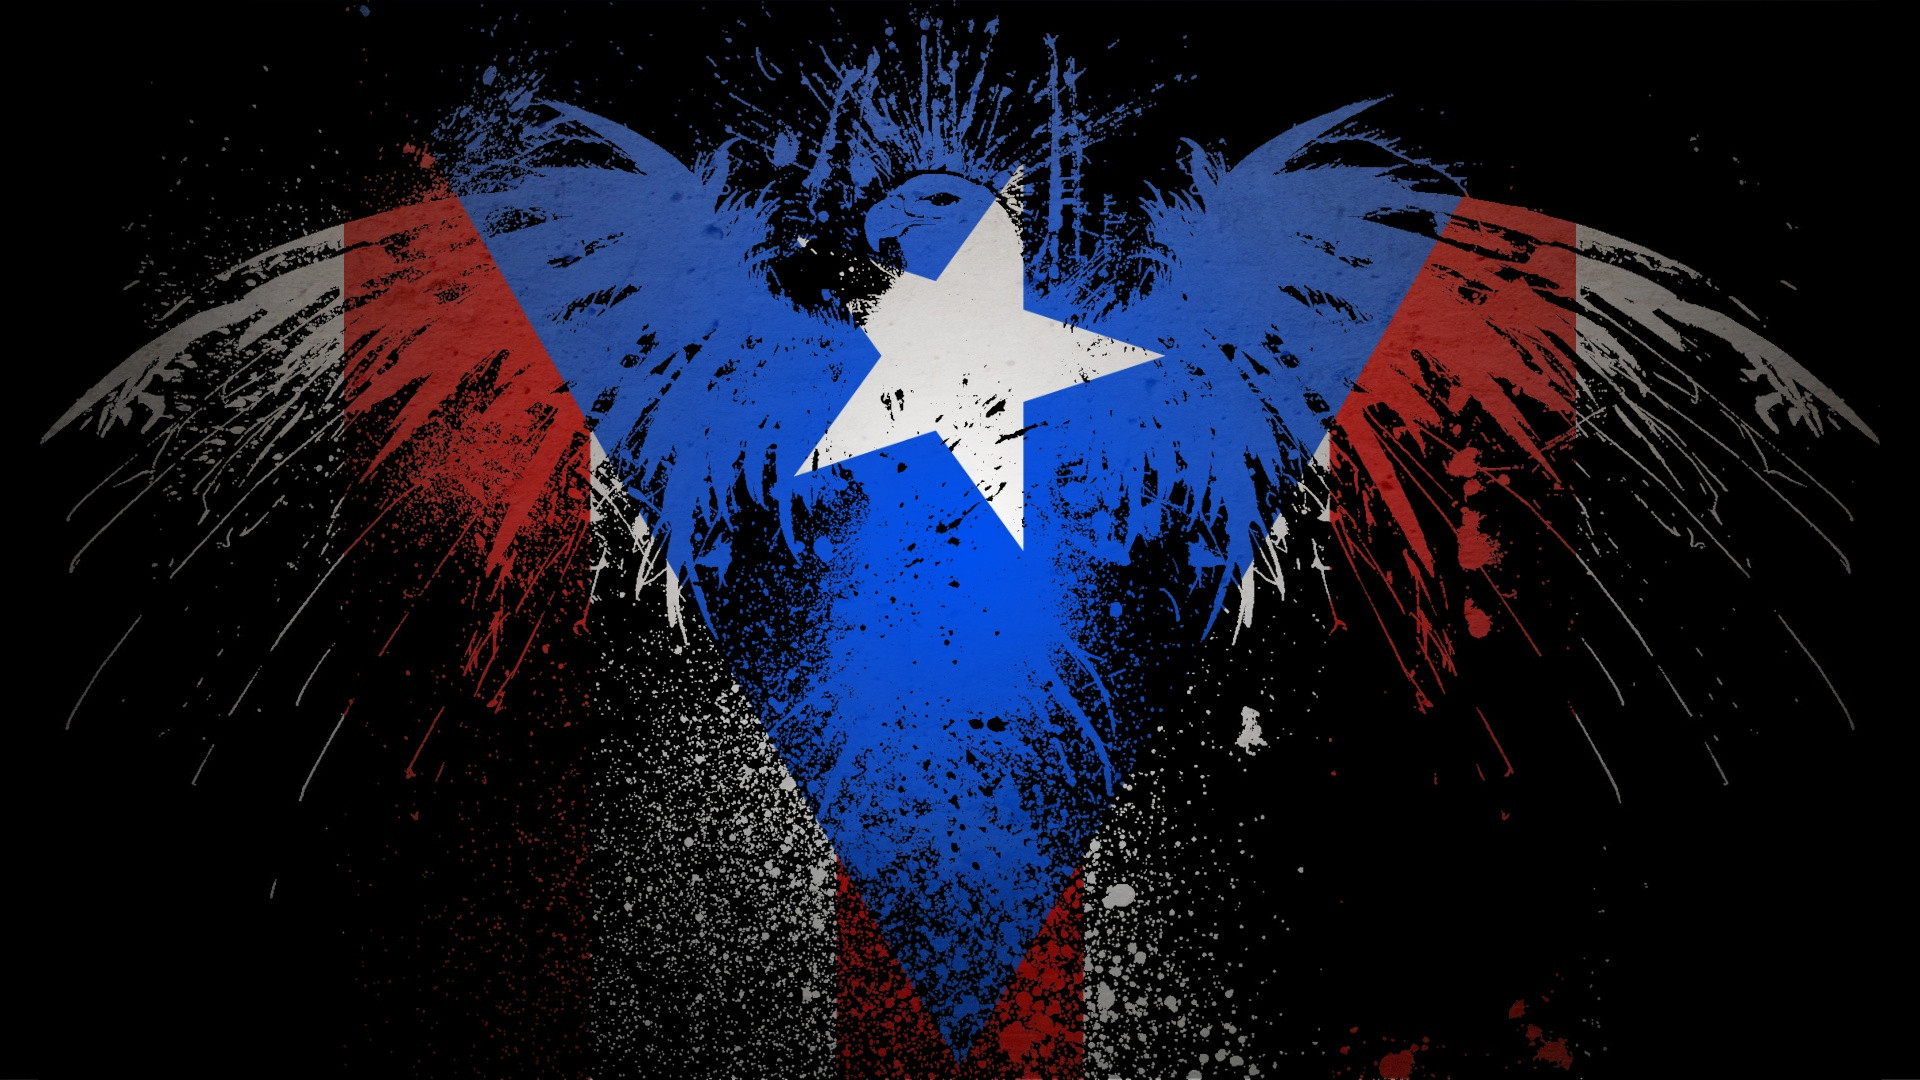 ... September 8, 2015 By admin Comments Off on Puerto Rico Wallpapers HD